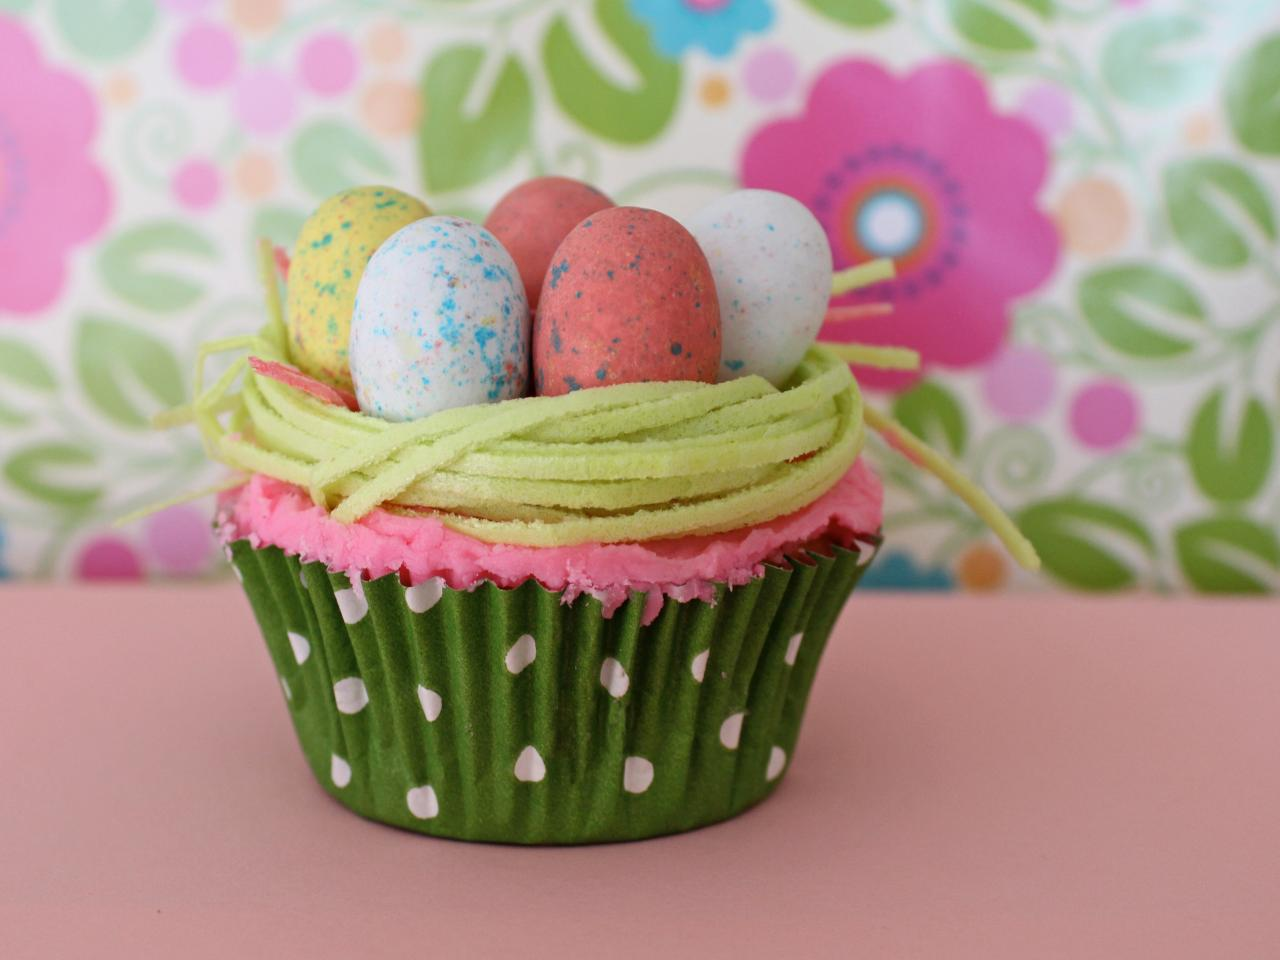 One cupcake recipe 13 easter decorating ideas for Cute cupcake decorating ideas for easter